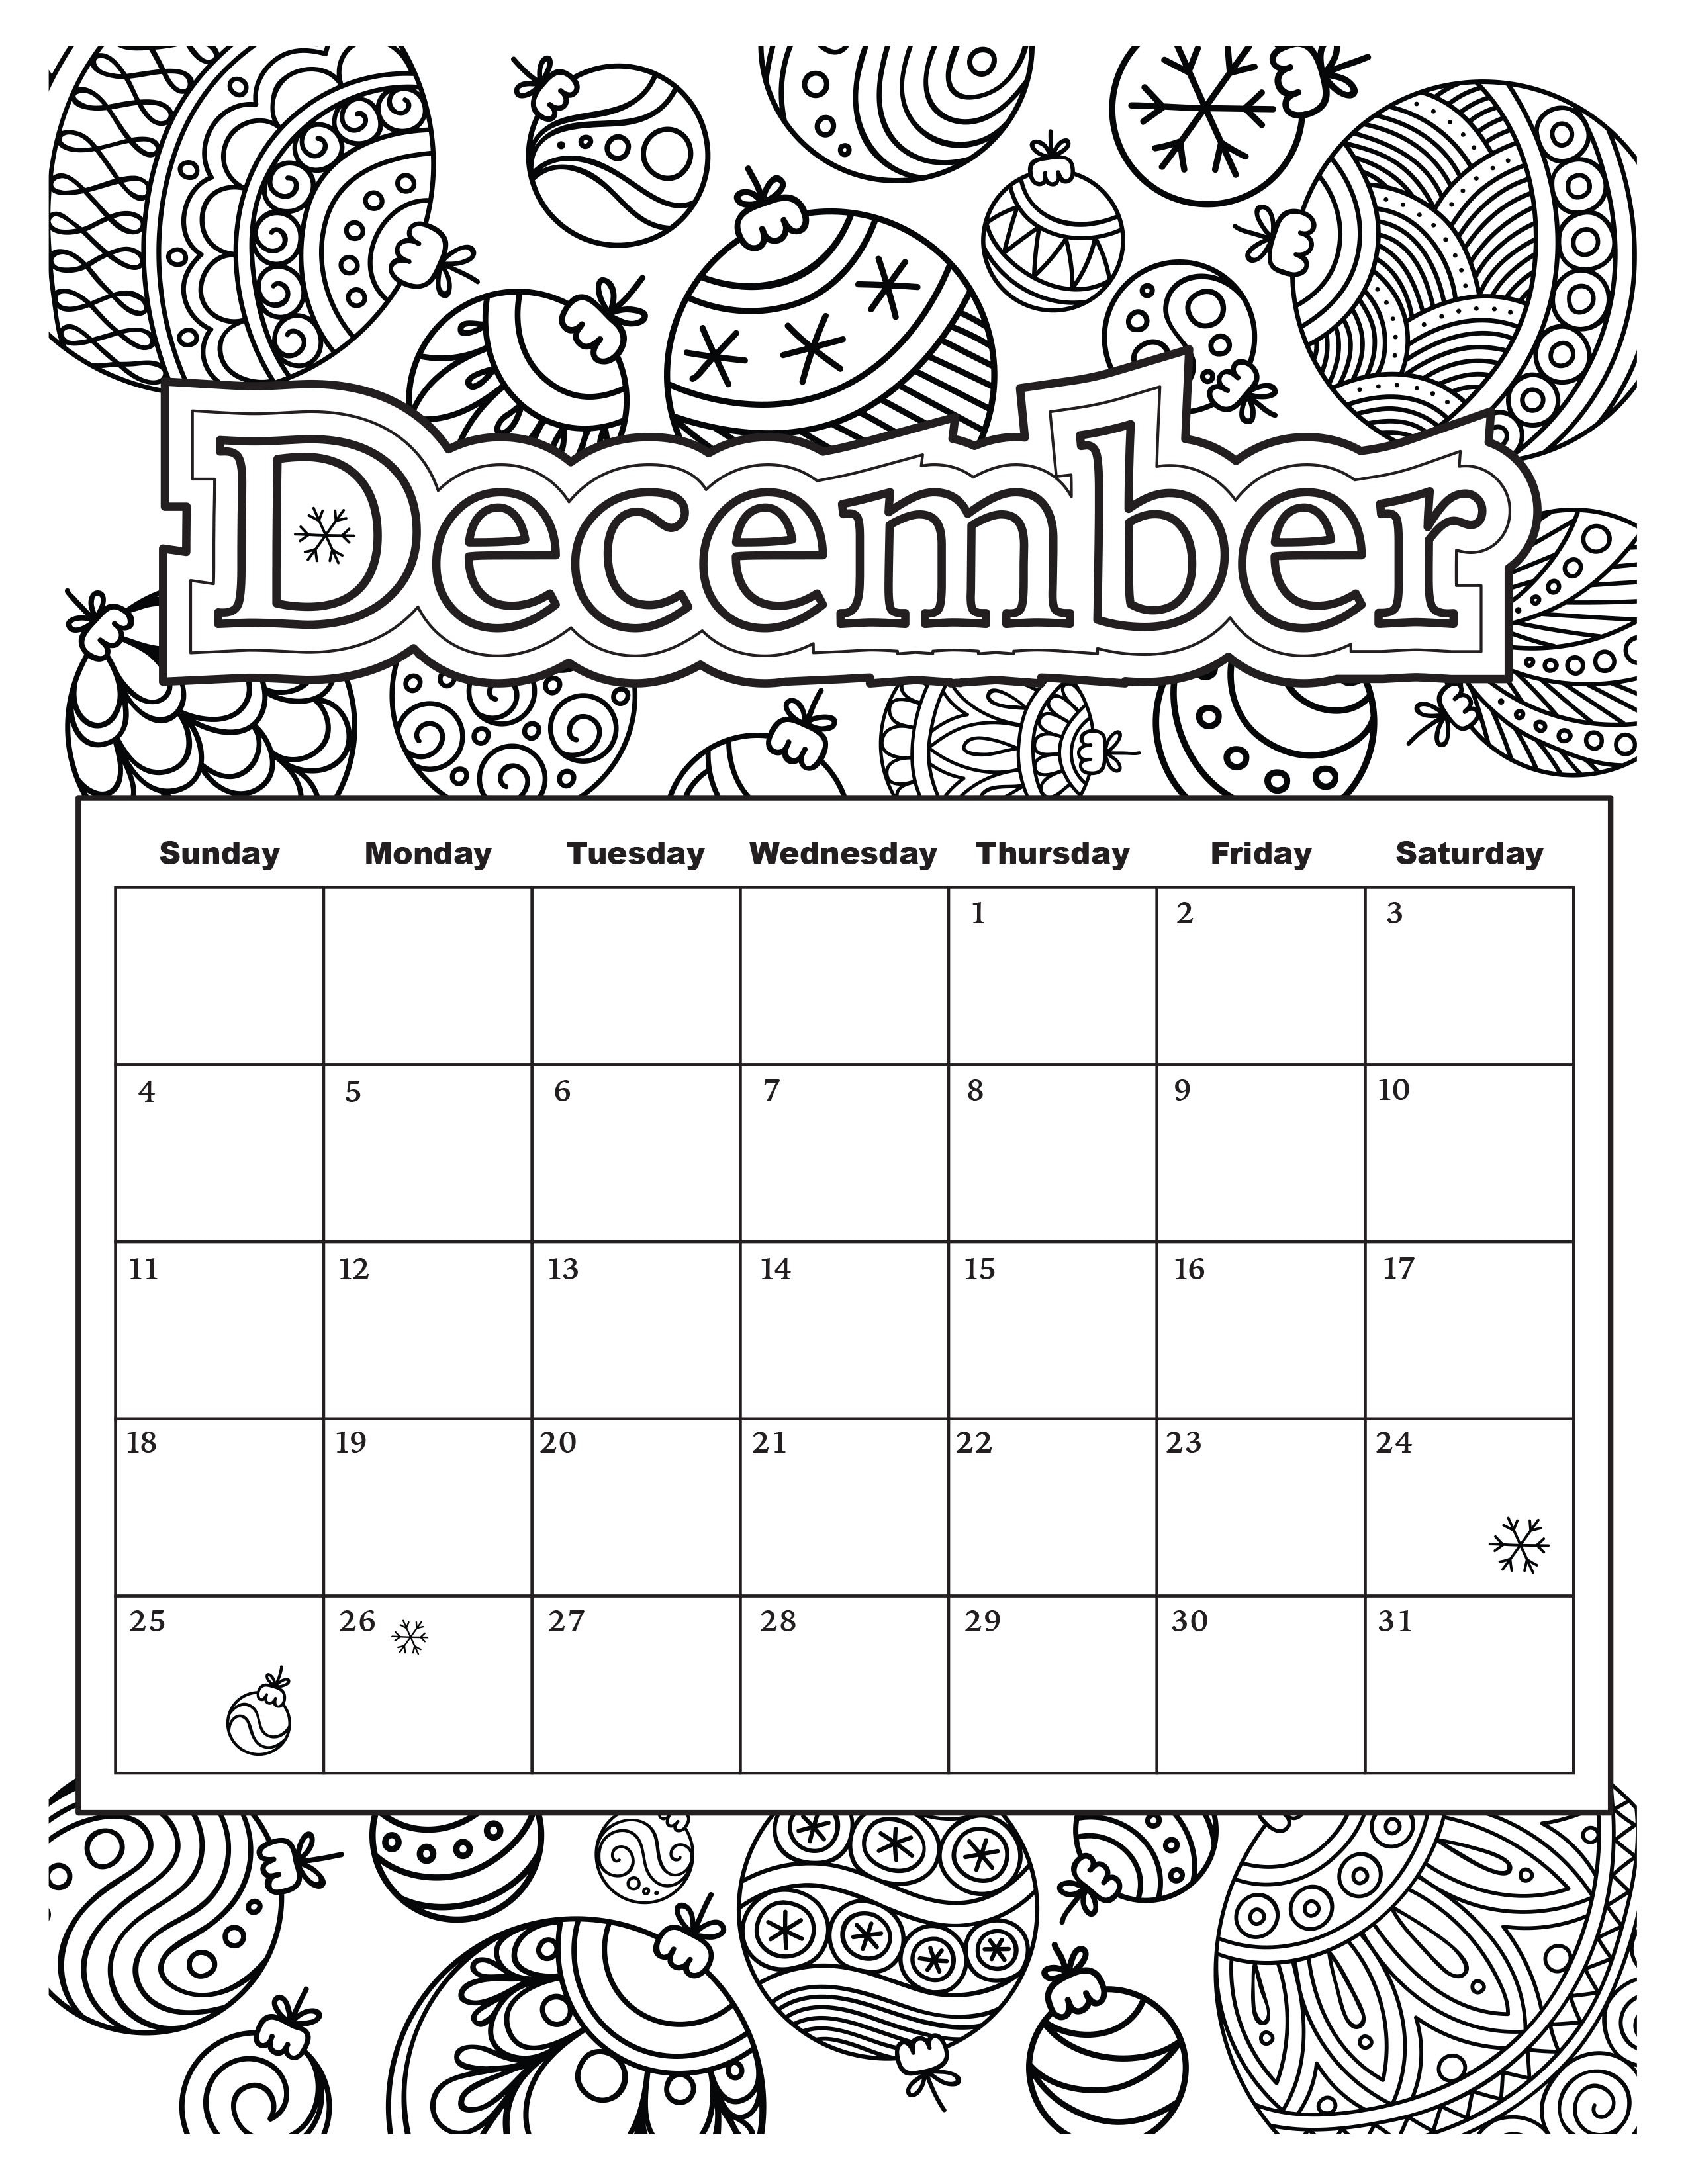 Free Download: Coloring Pages From Popular Adult Coloring Books for Coloring Pages October Calendar 2019 Adults